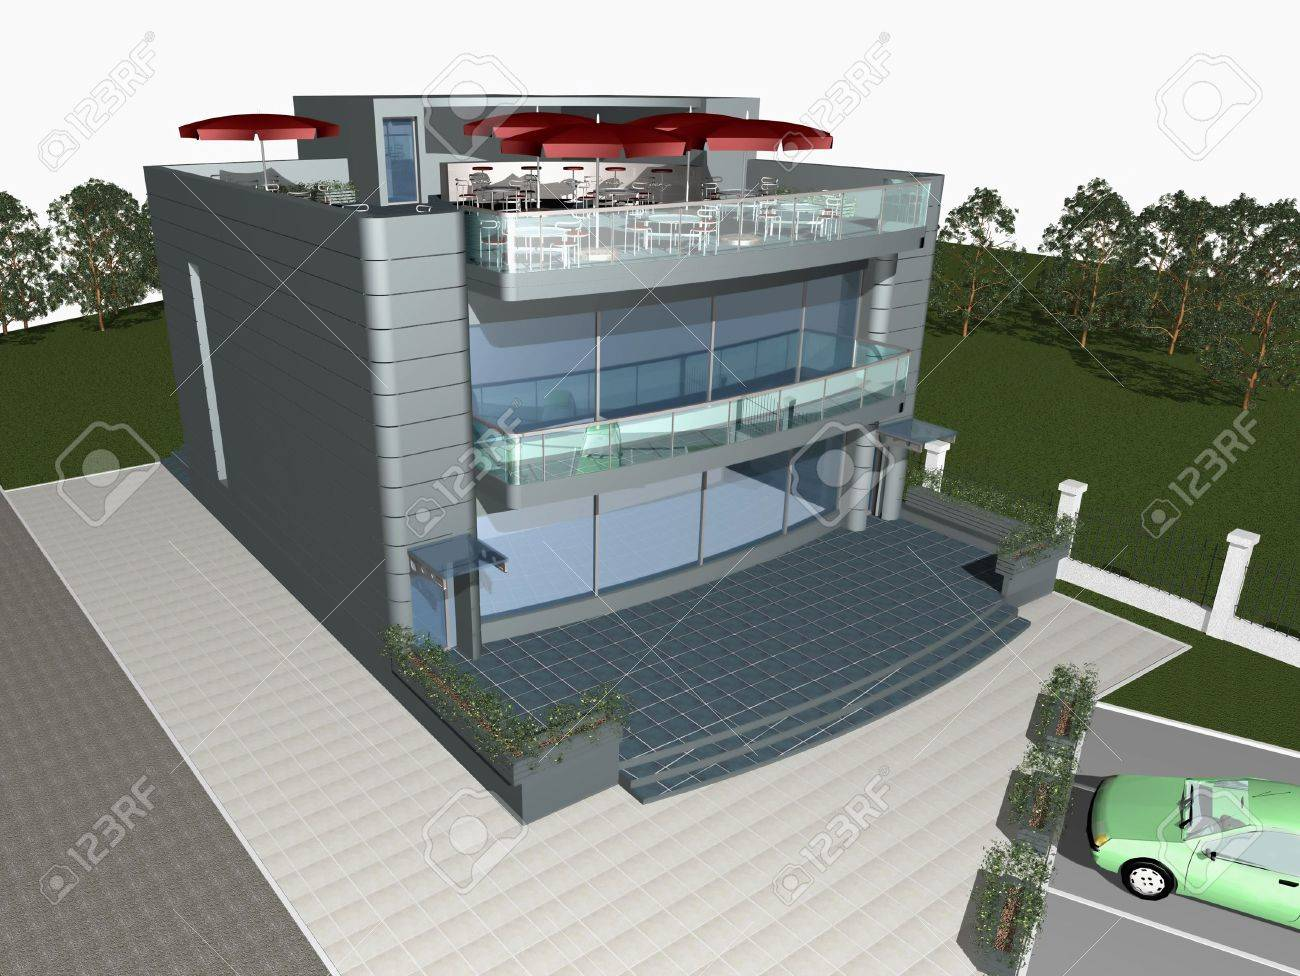 3d render of modern house with parking space and car in front of building Stock Photo - 2539154